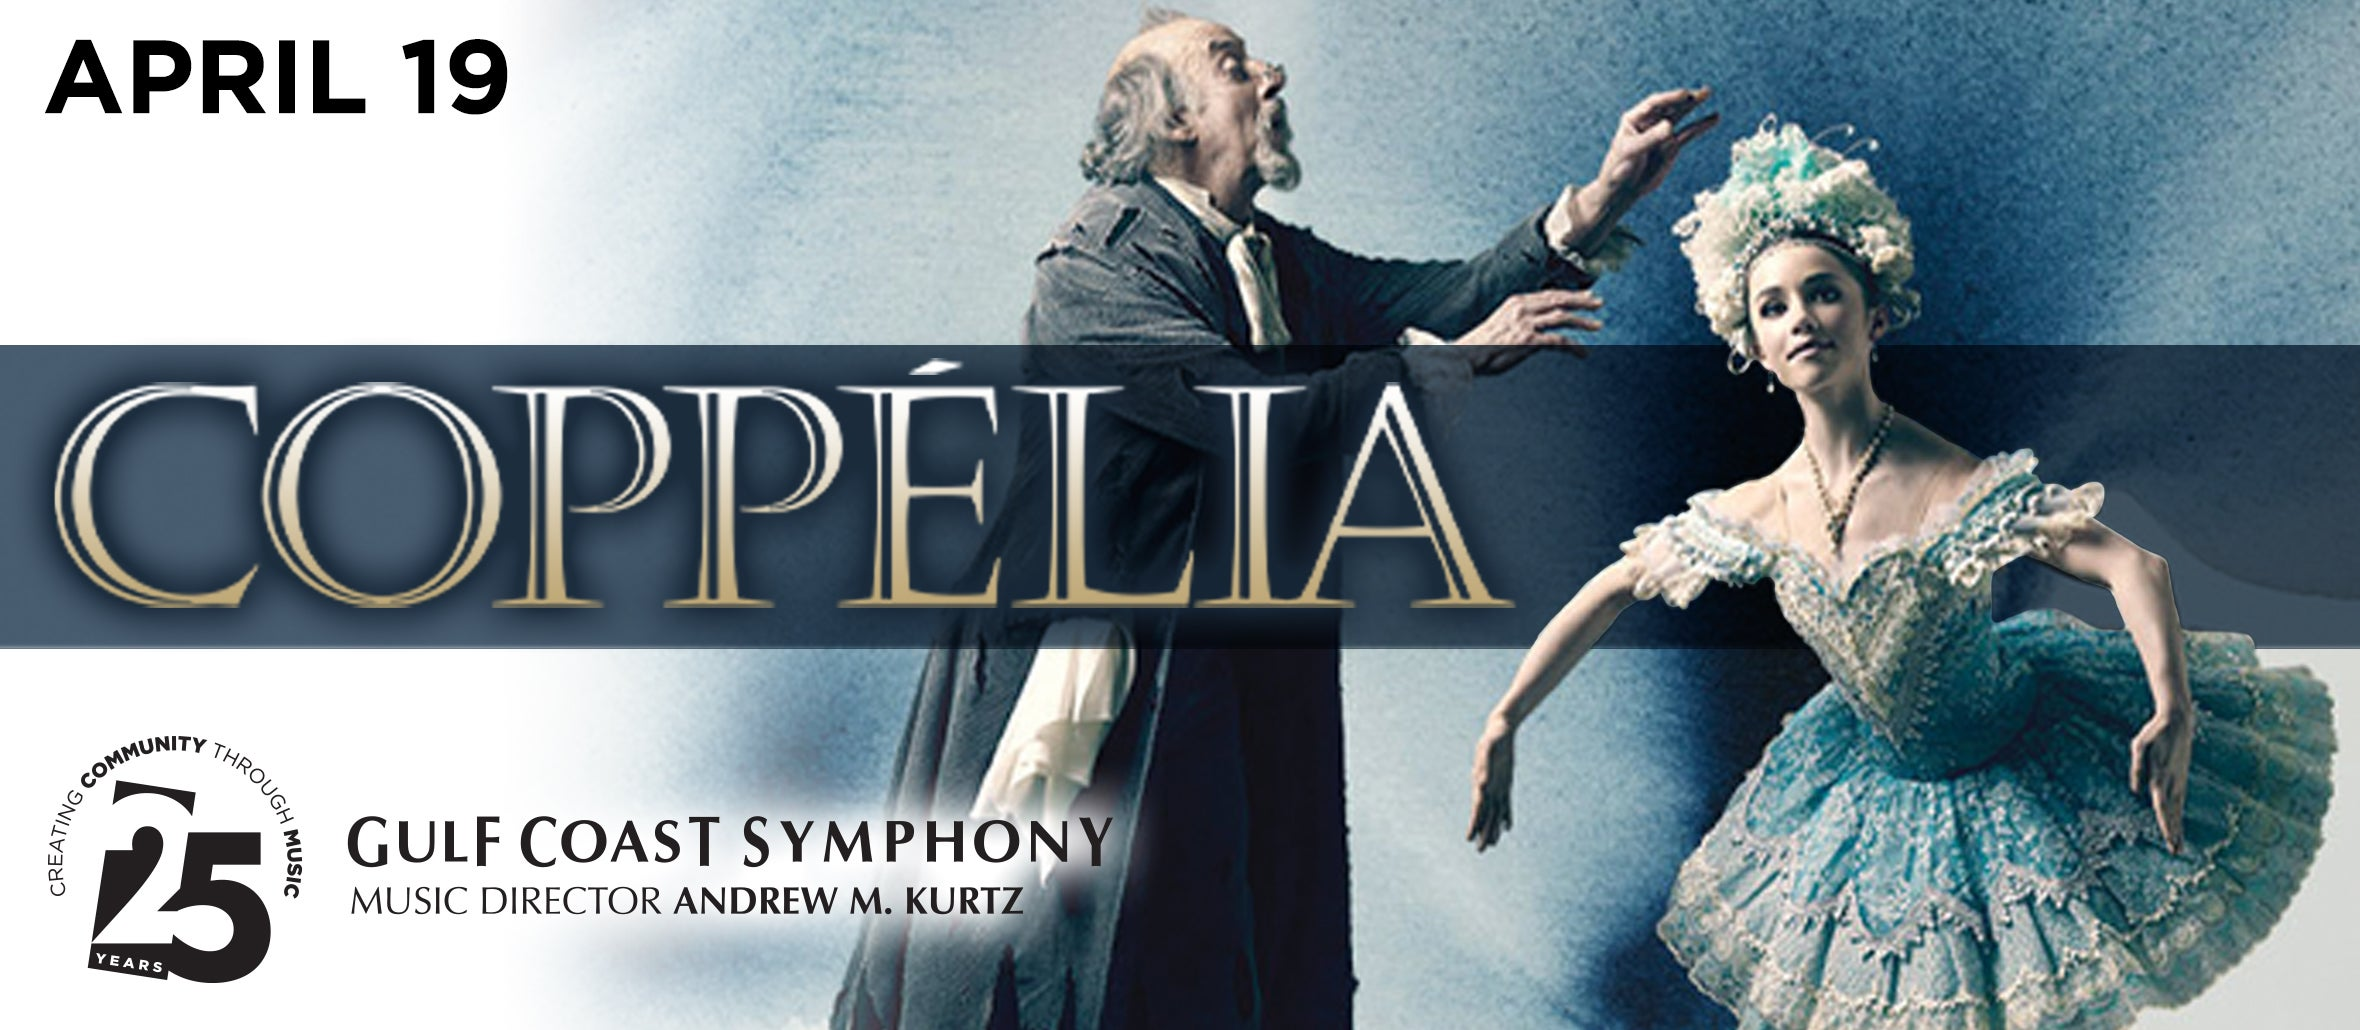 Gulf Coast Symphony: Coppelia With Gulfshore Ballet has been rescheduled